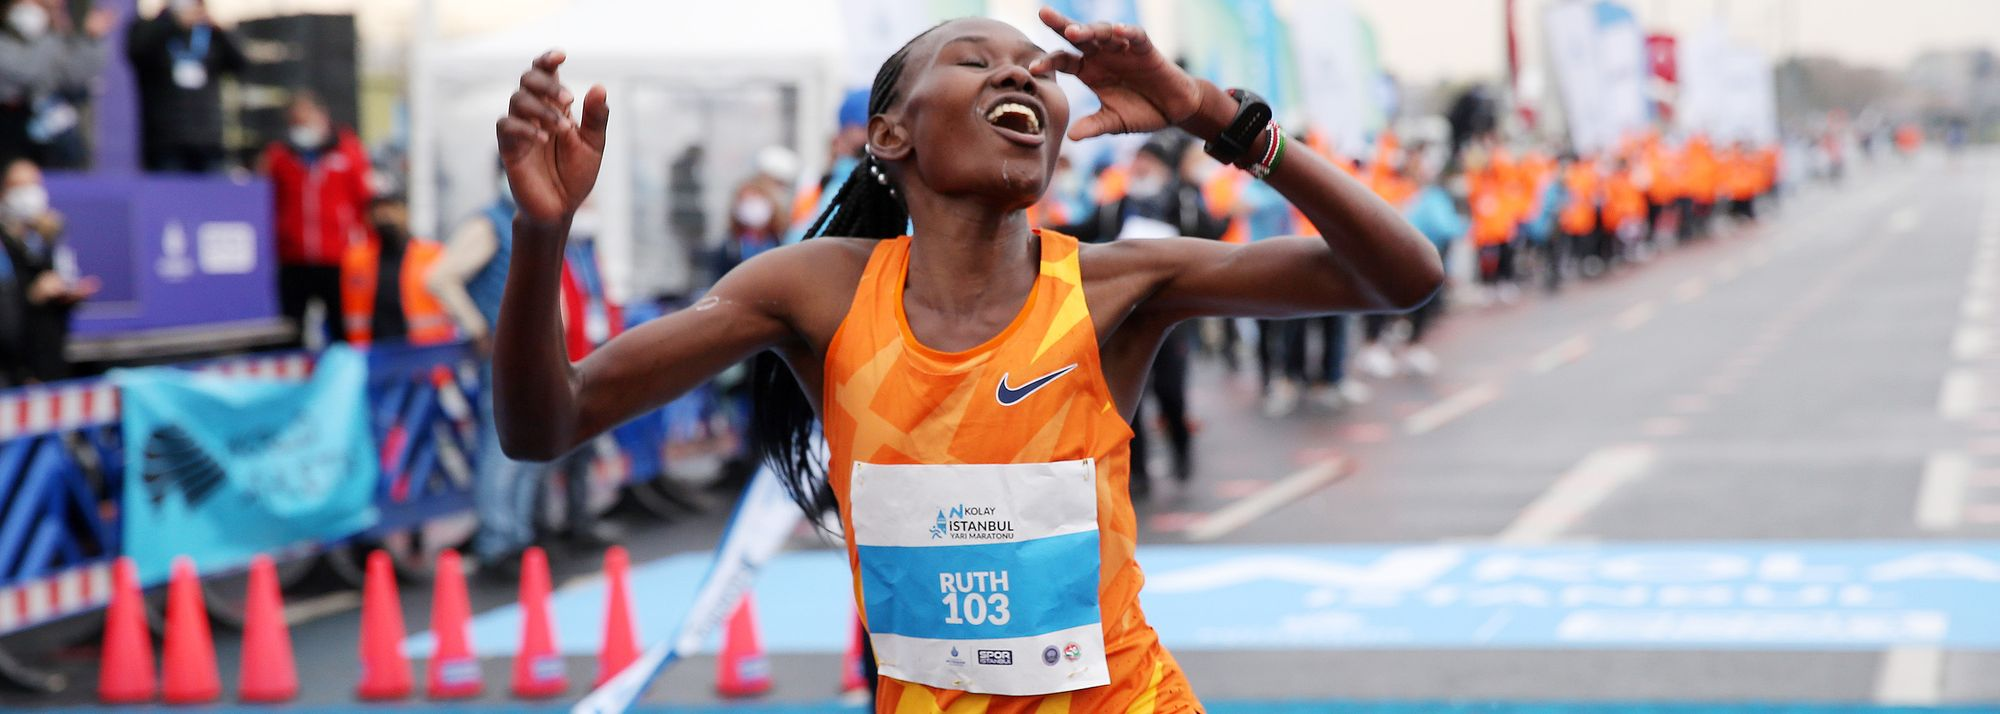 Chepngetich's 1:04:02 half marathon and Niyonsaba's 5:21.56 2000m world records are now official